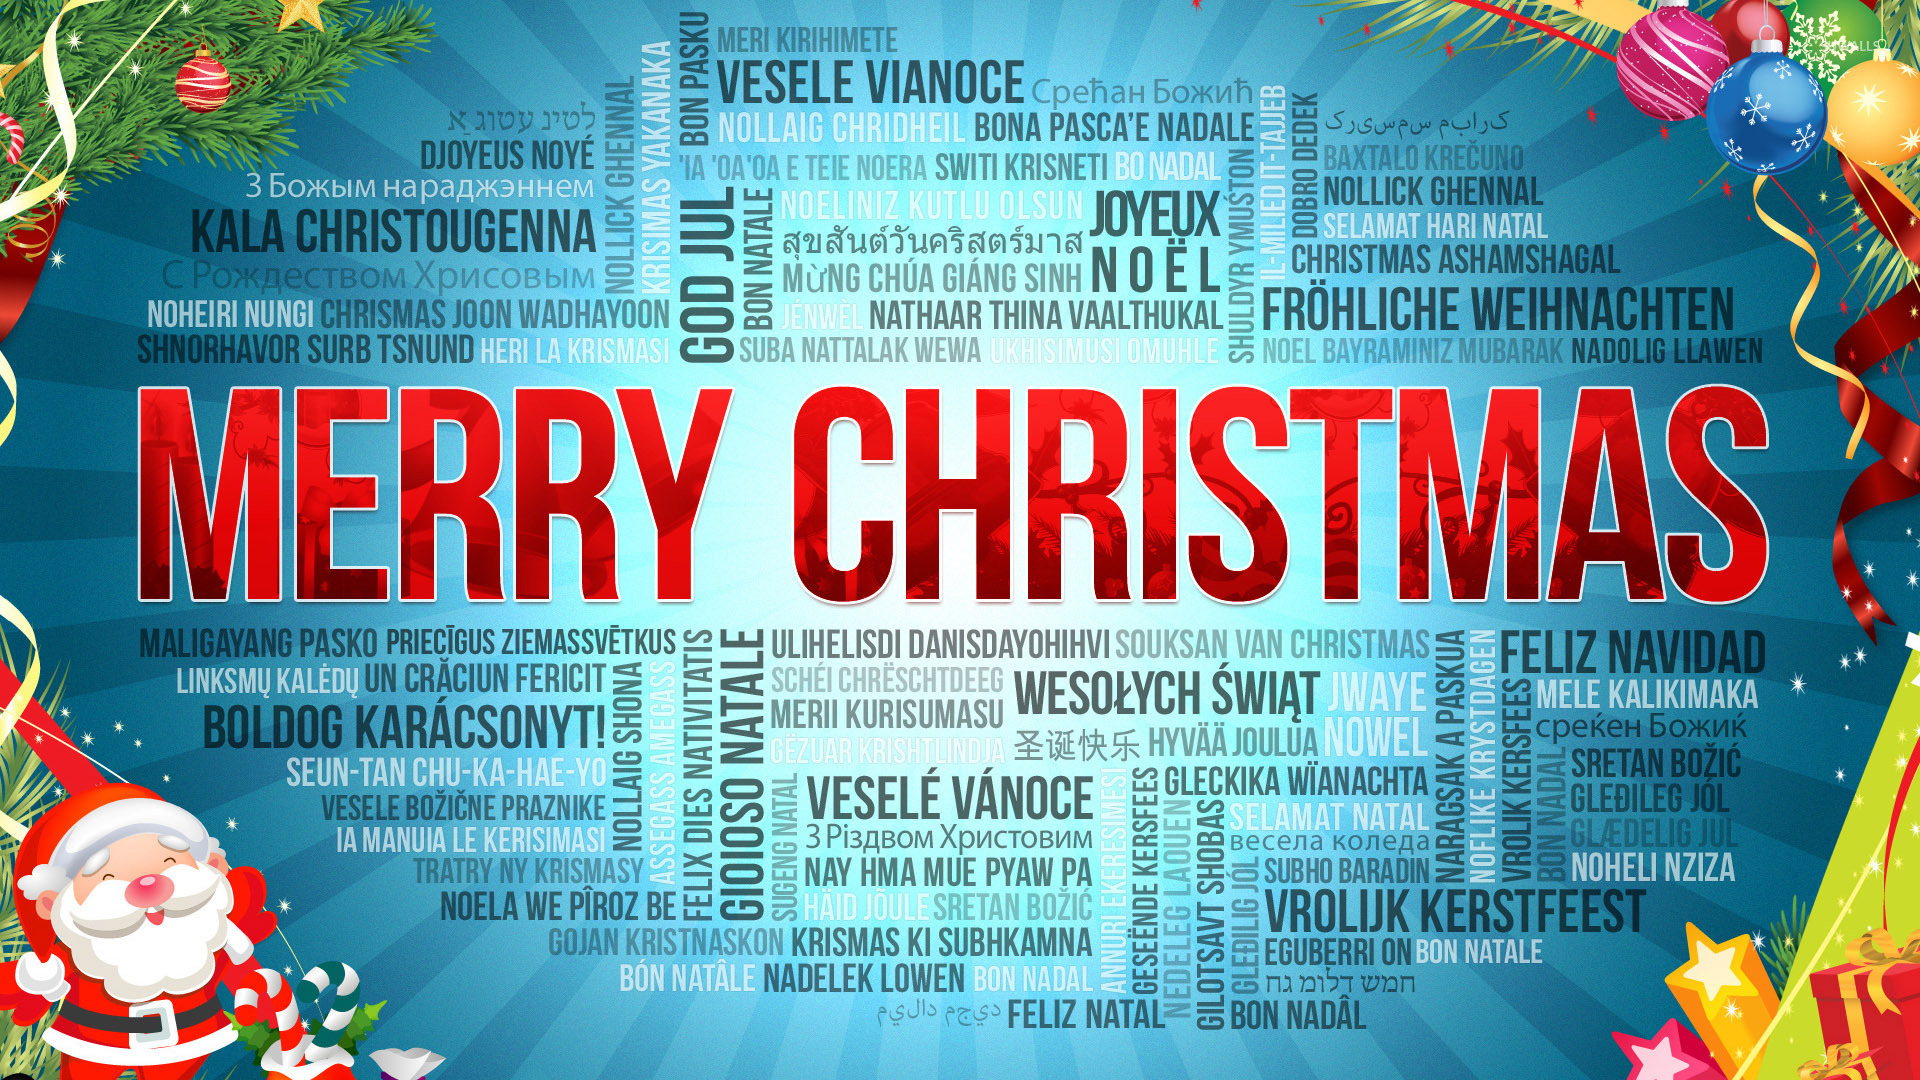 Merry Christmas In Many Languages 50786 1920×1080 Wallpaper